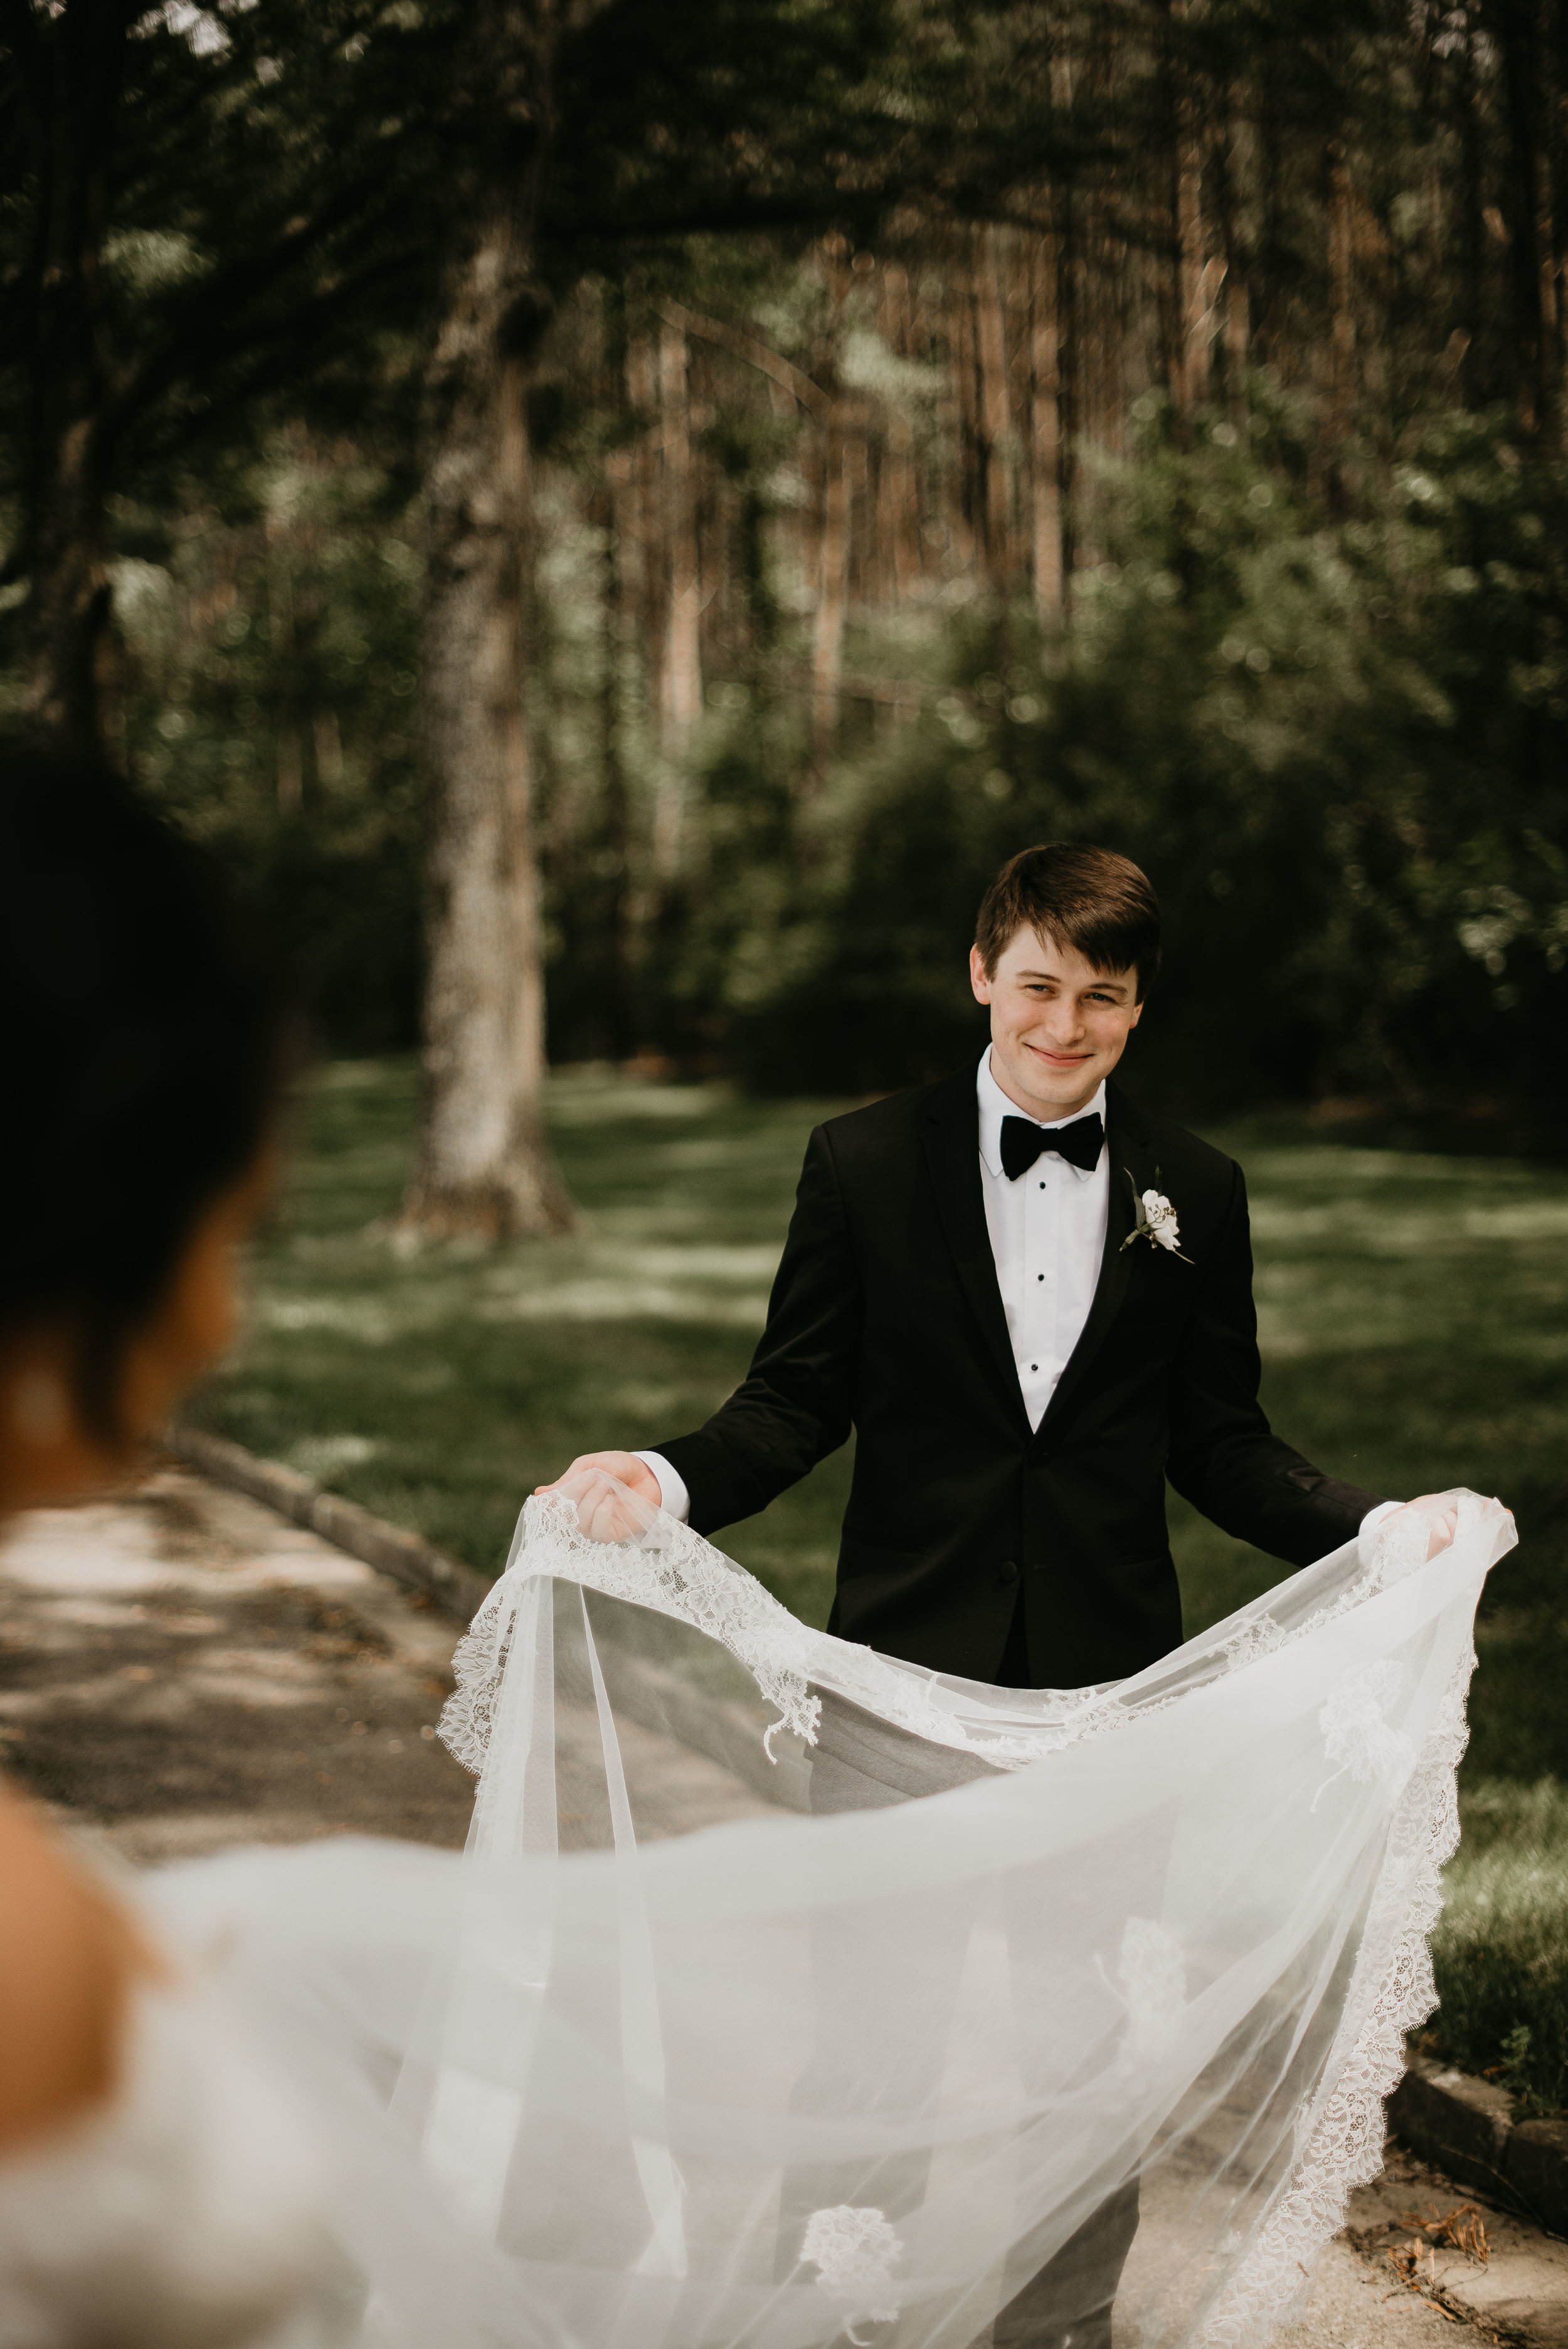 Groom holding bride's wedding dress and smiling at Berry College wedding